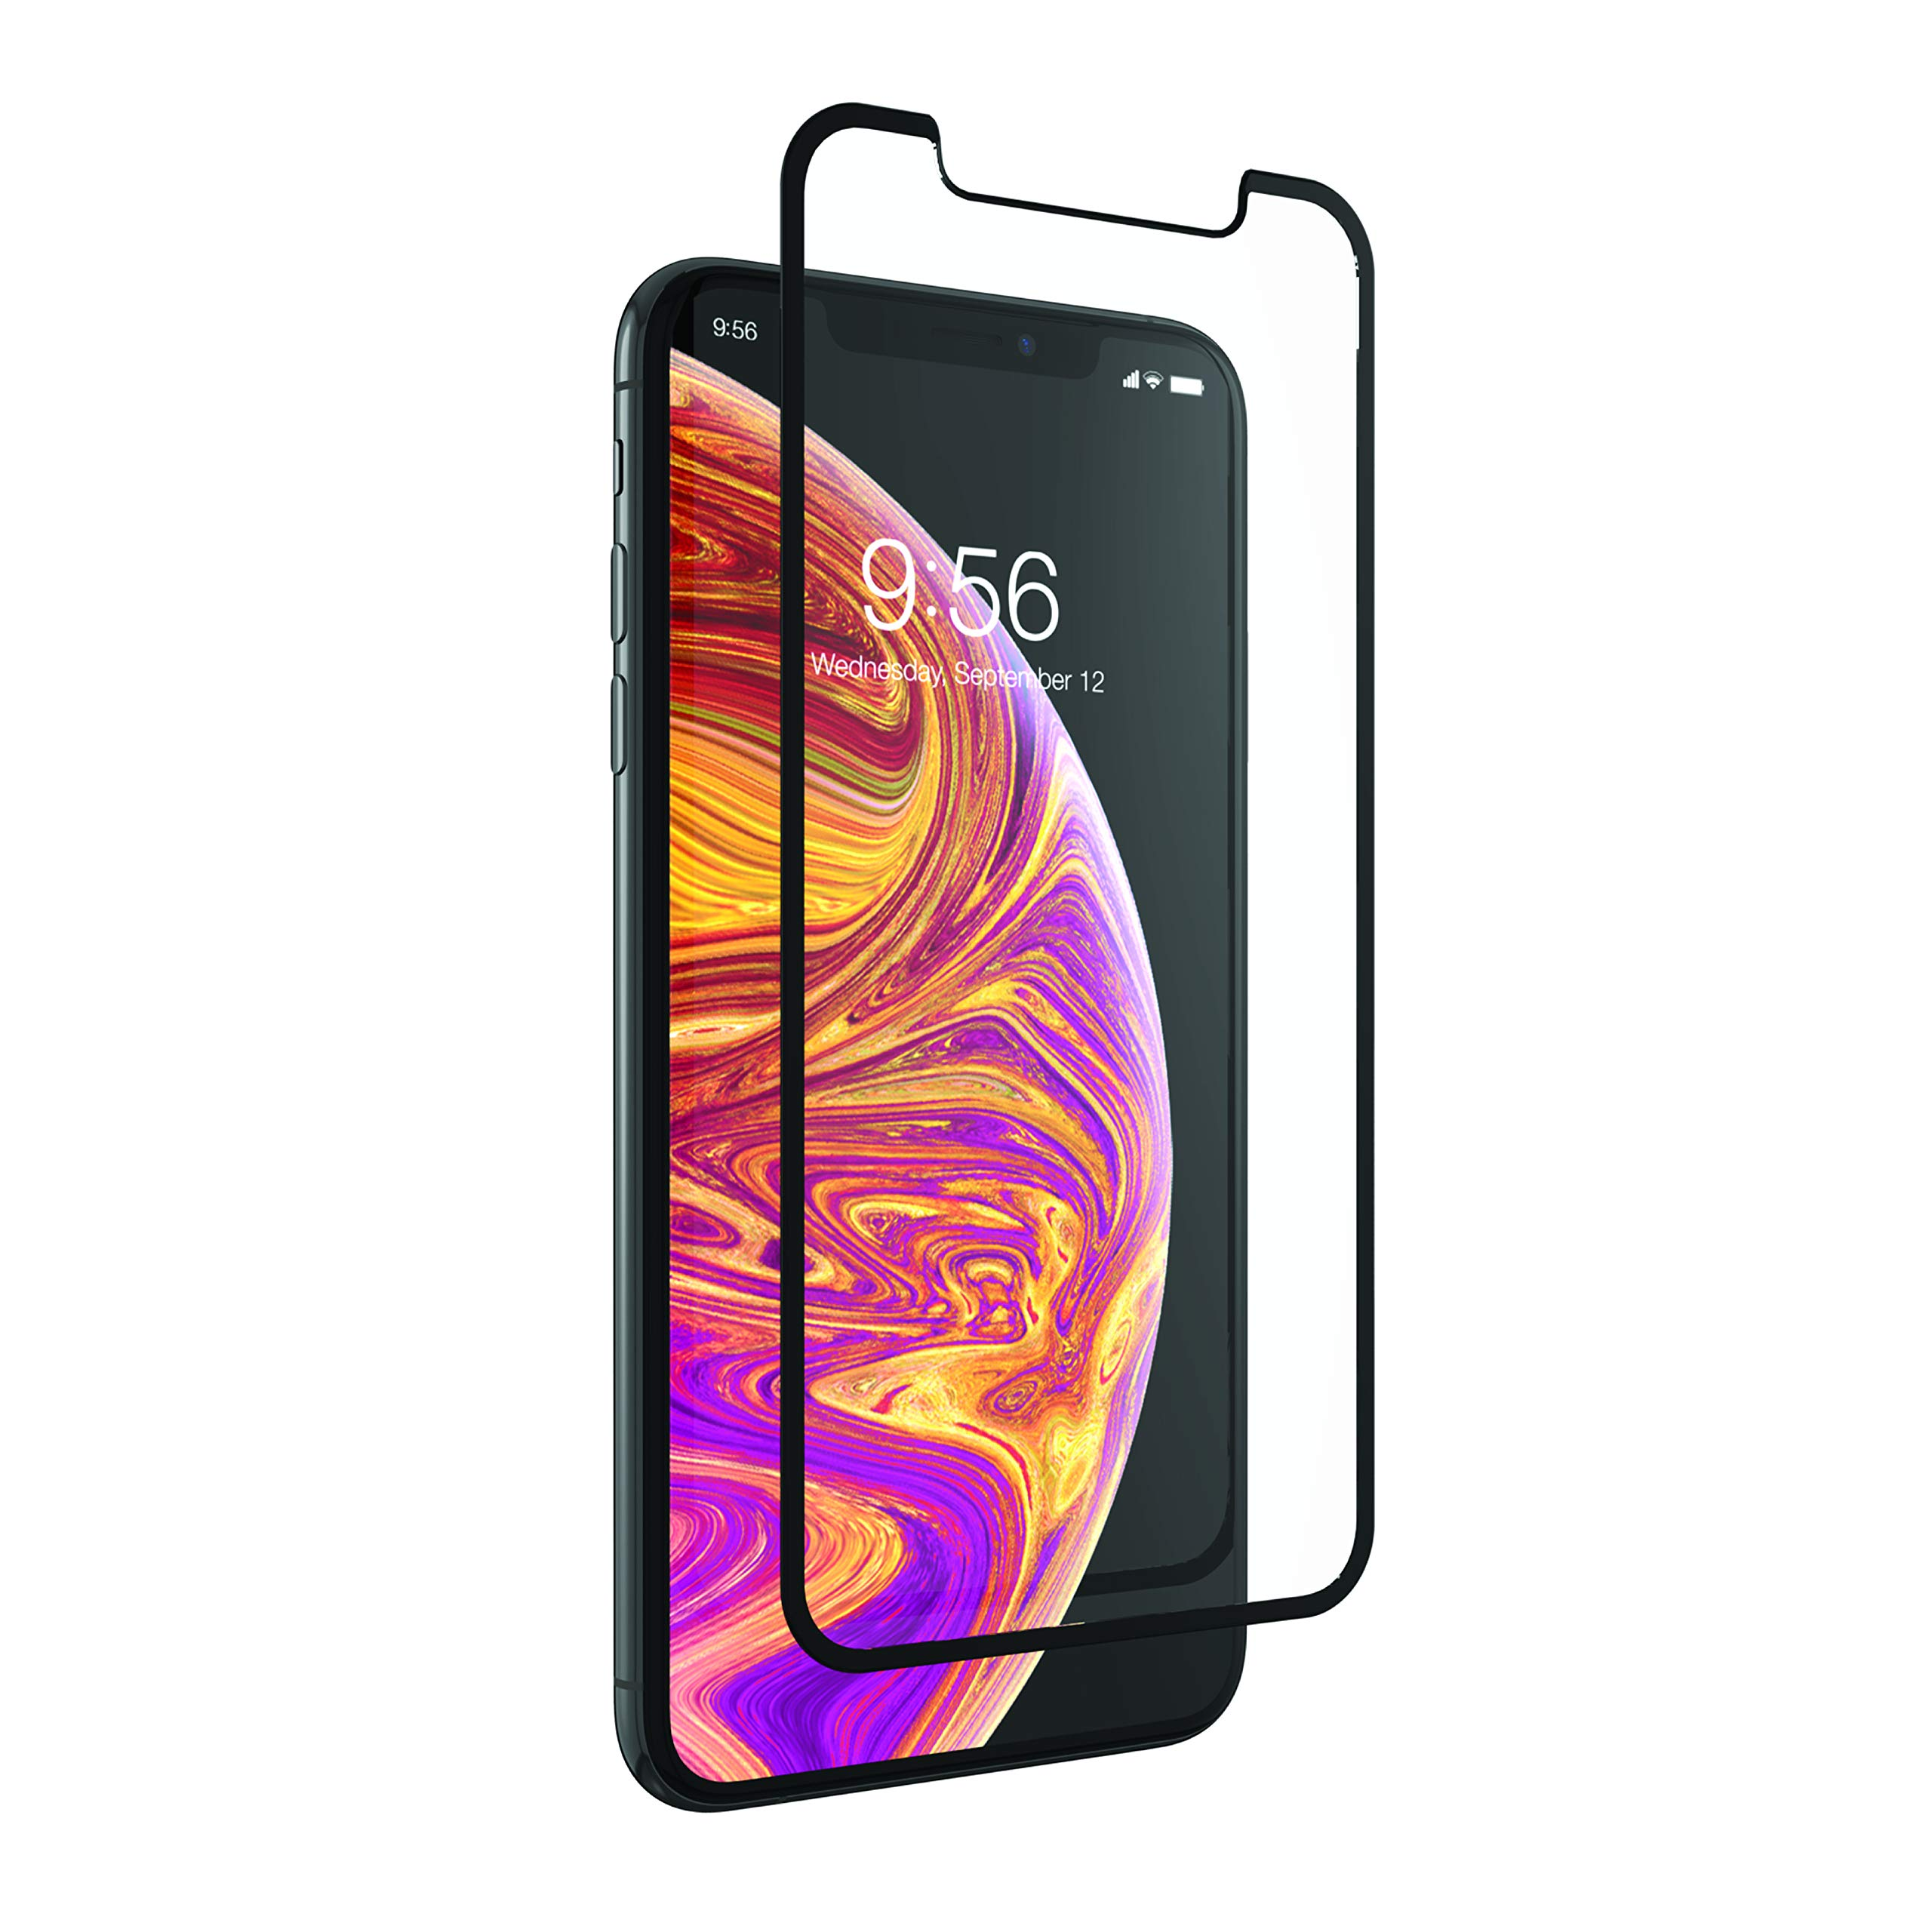 ZAGG InvisibleShield Glass+ Luxe Tempered Screen Protector for iPhone Xs Max - Clear by ZAGG